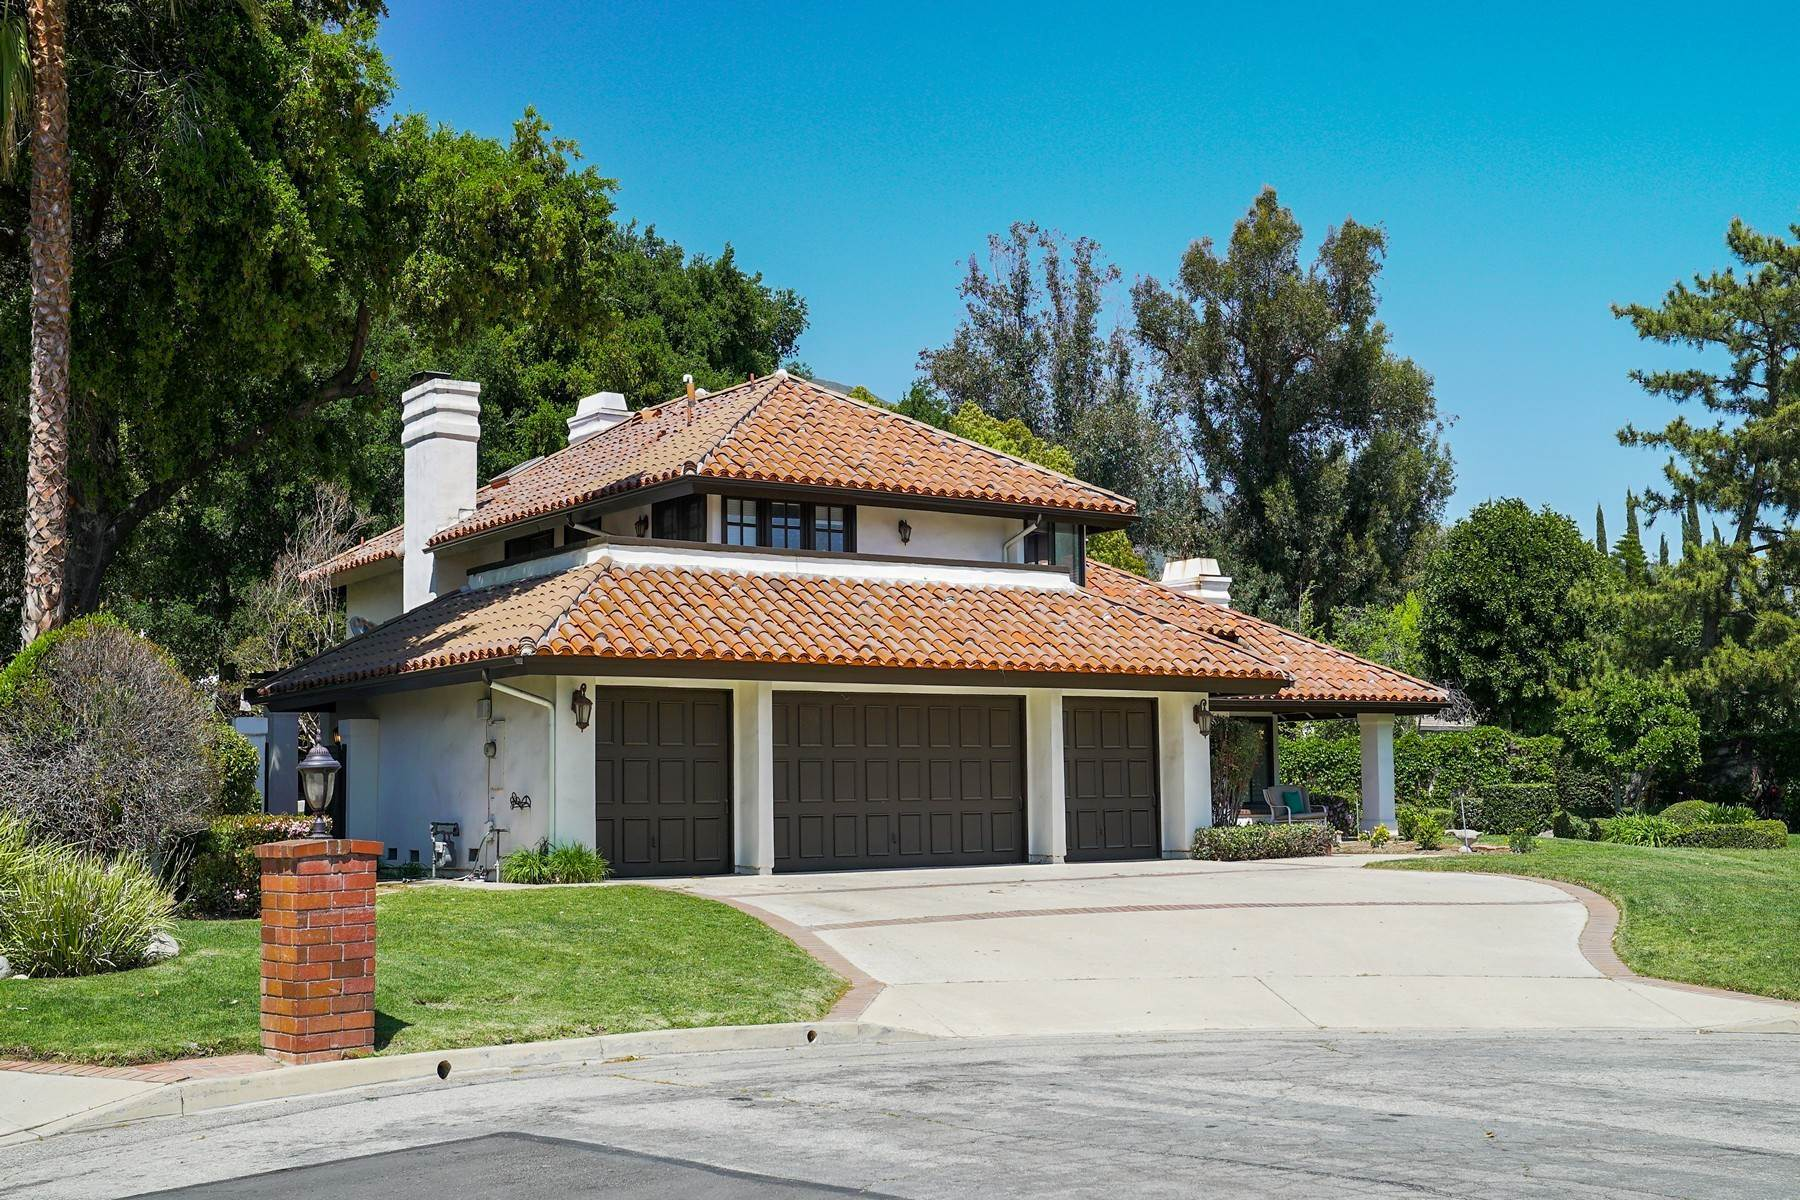 2. Single Family Homes for Sale at 6019 Zircon Avenue, Alta Loma, CA 91701 6019 Zircon Avenue Rancho Cucamonga, California 91701 United States